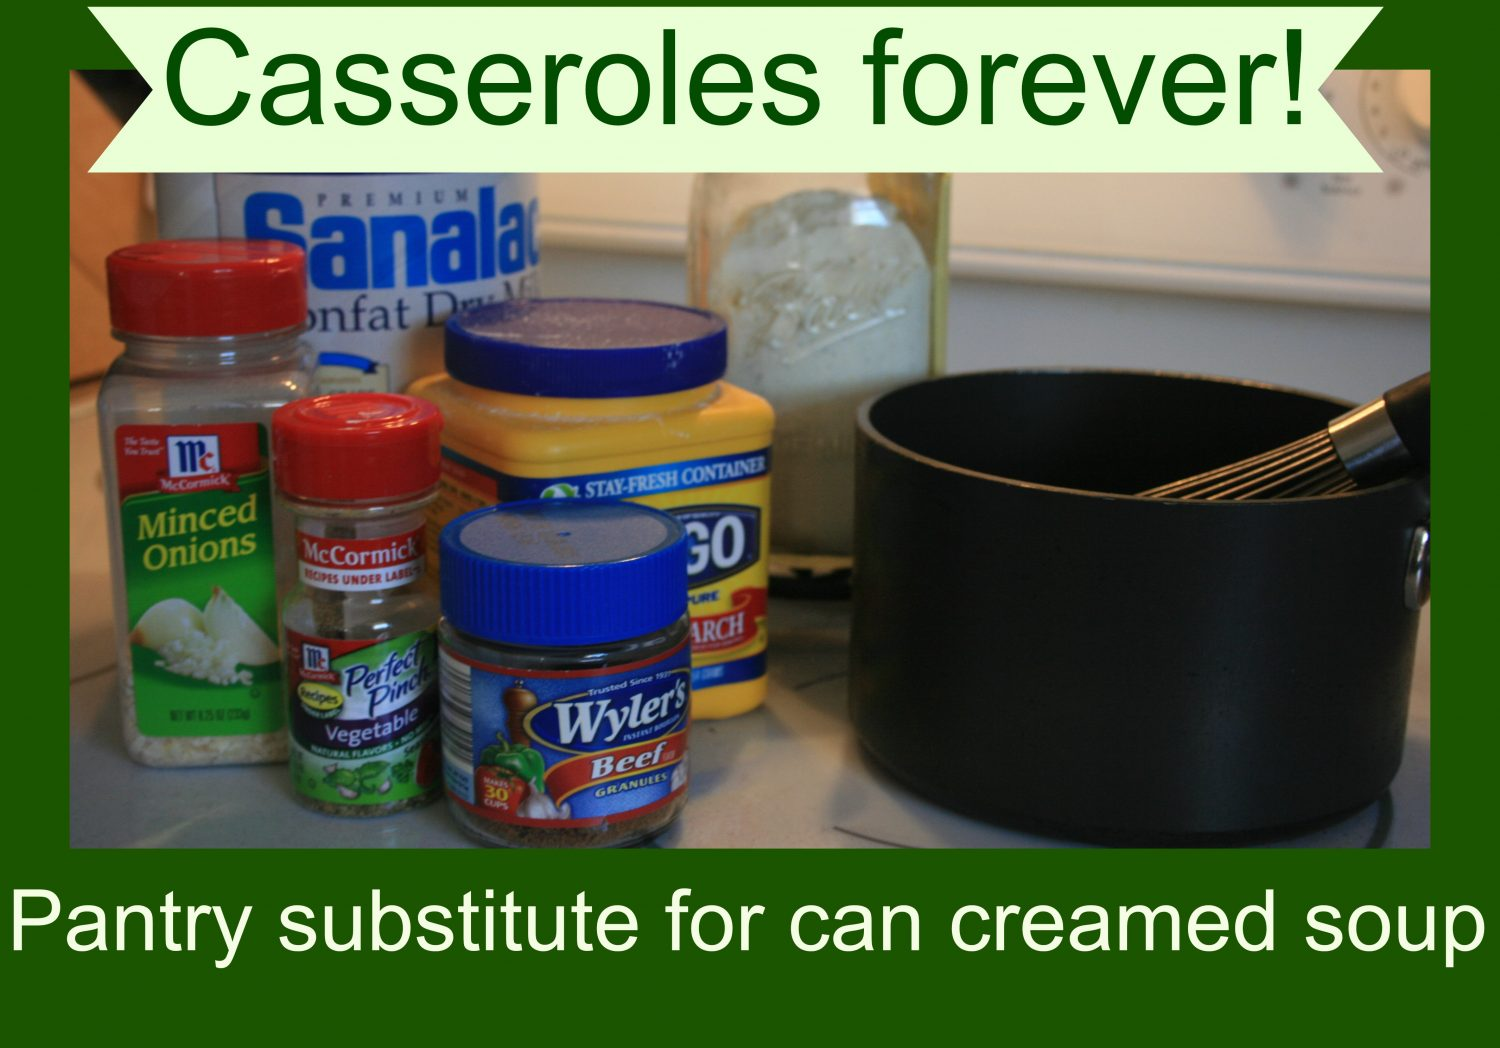 Casseroles Forever! Pantry Substitute for Canned Cream Soup